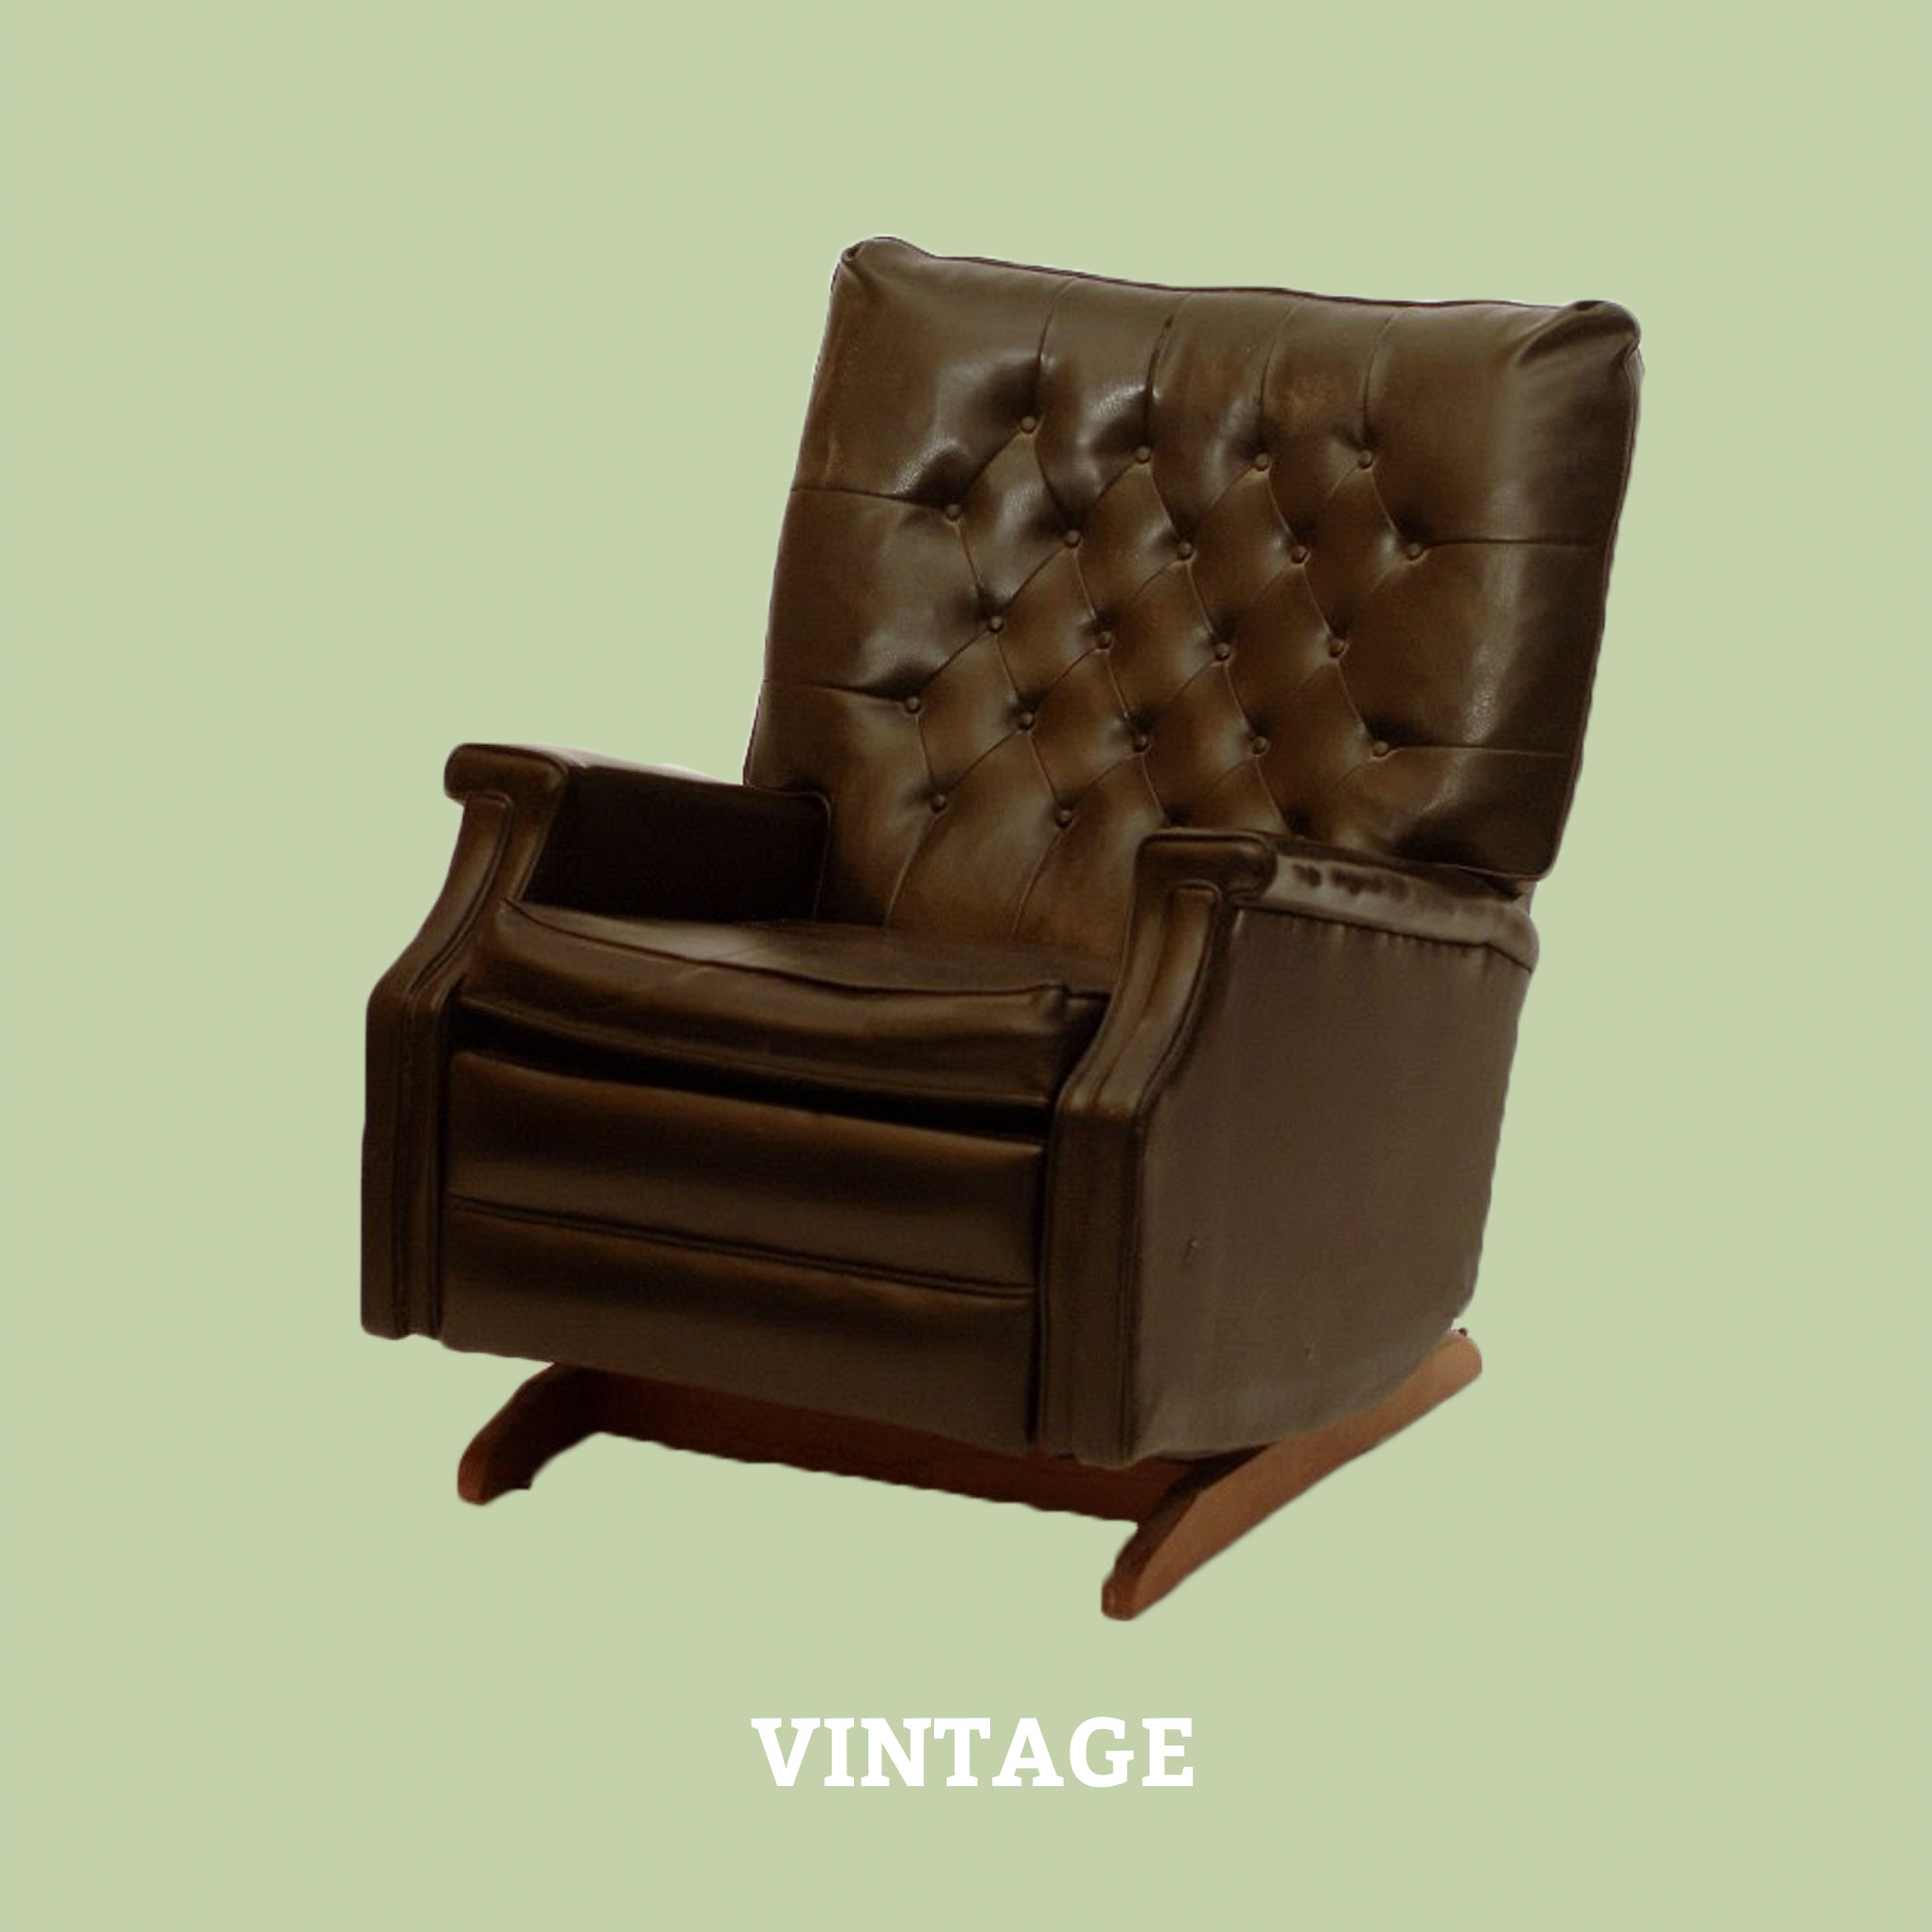 Harrington Galleries - vintage furniture